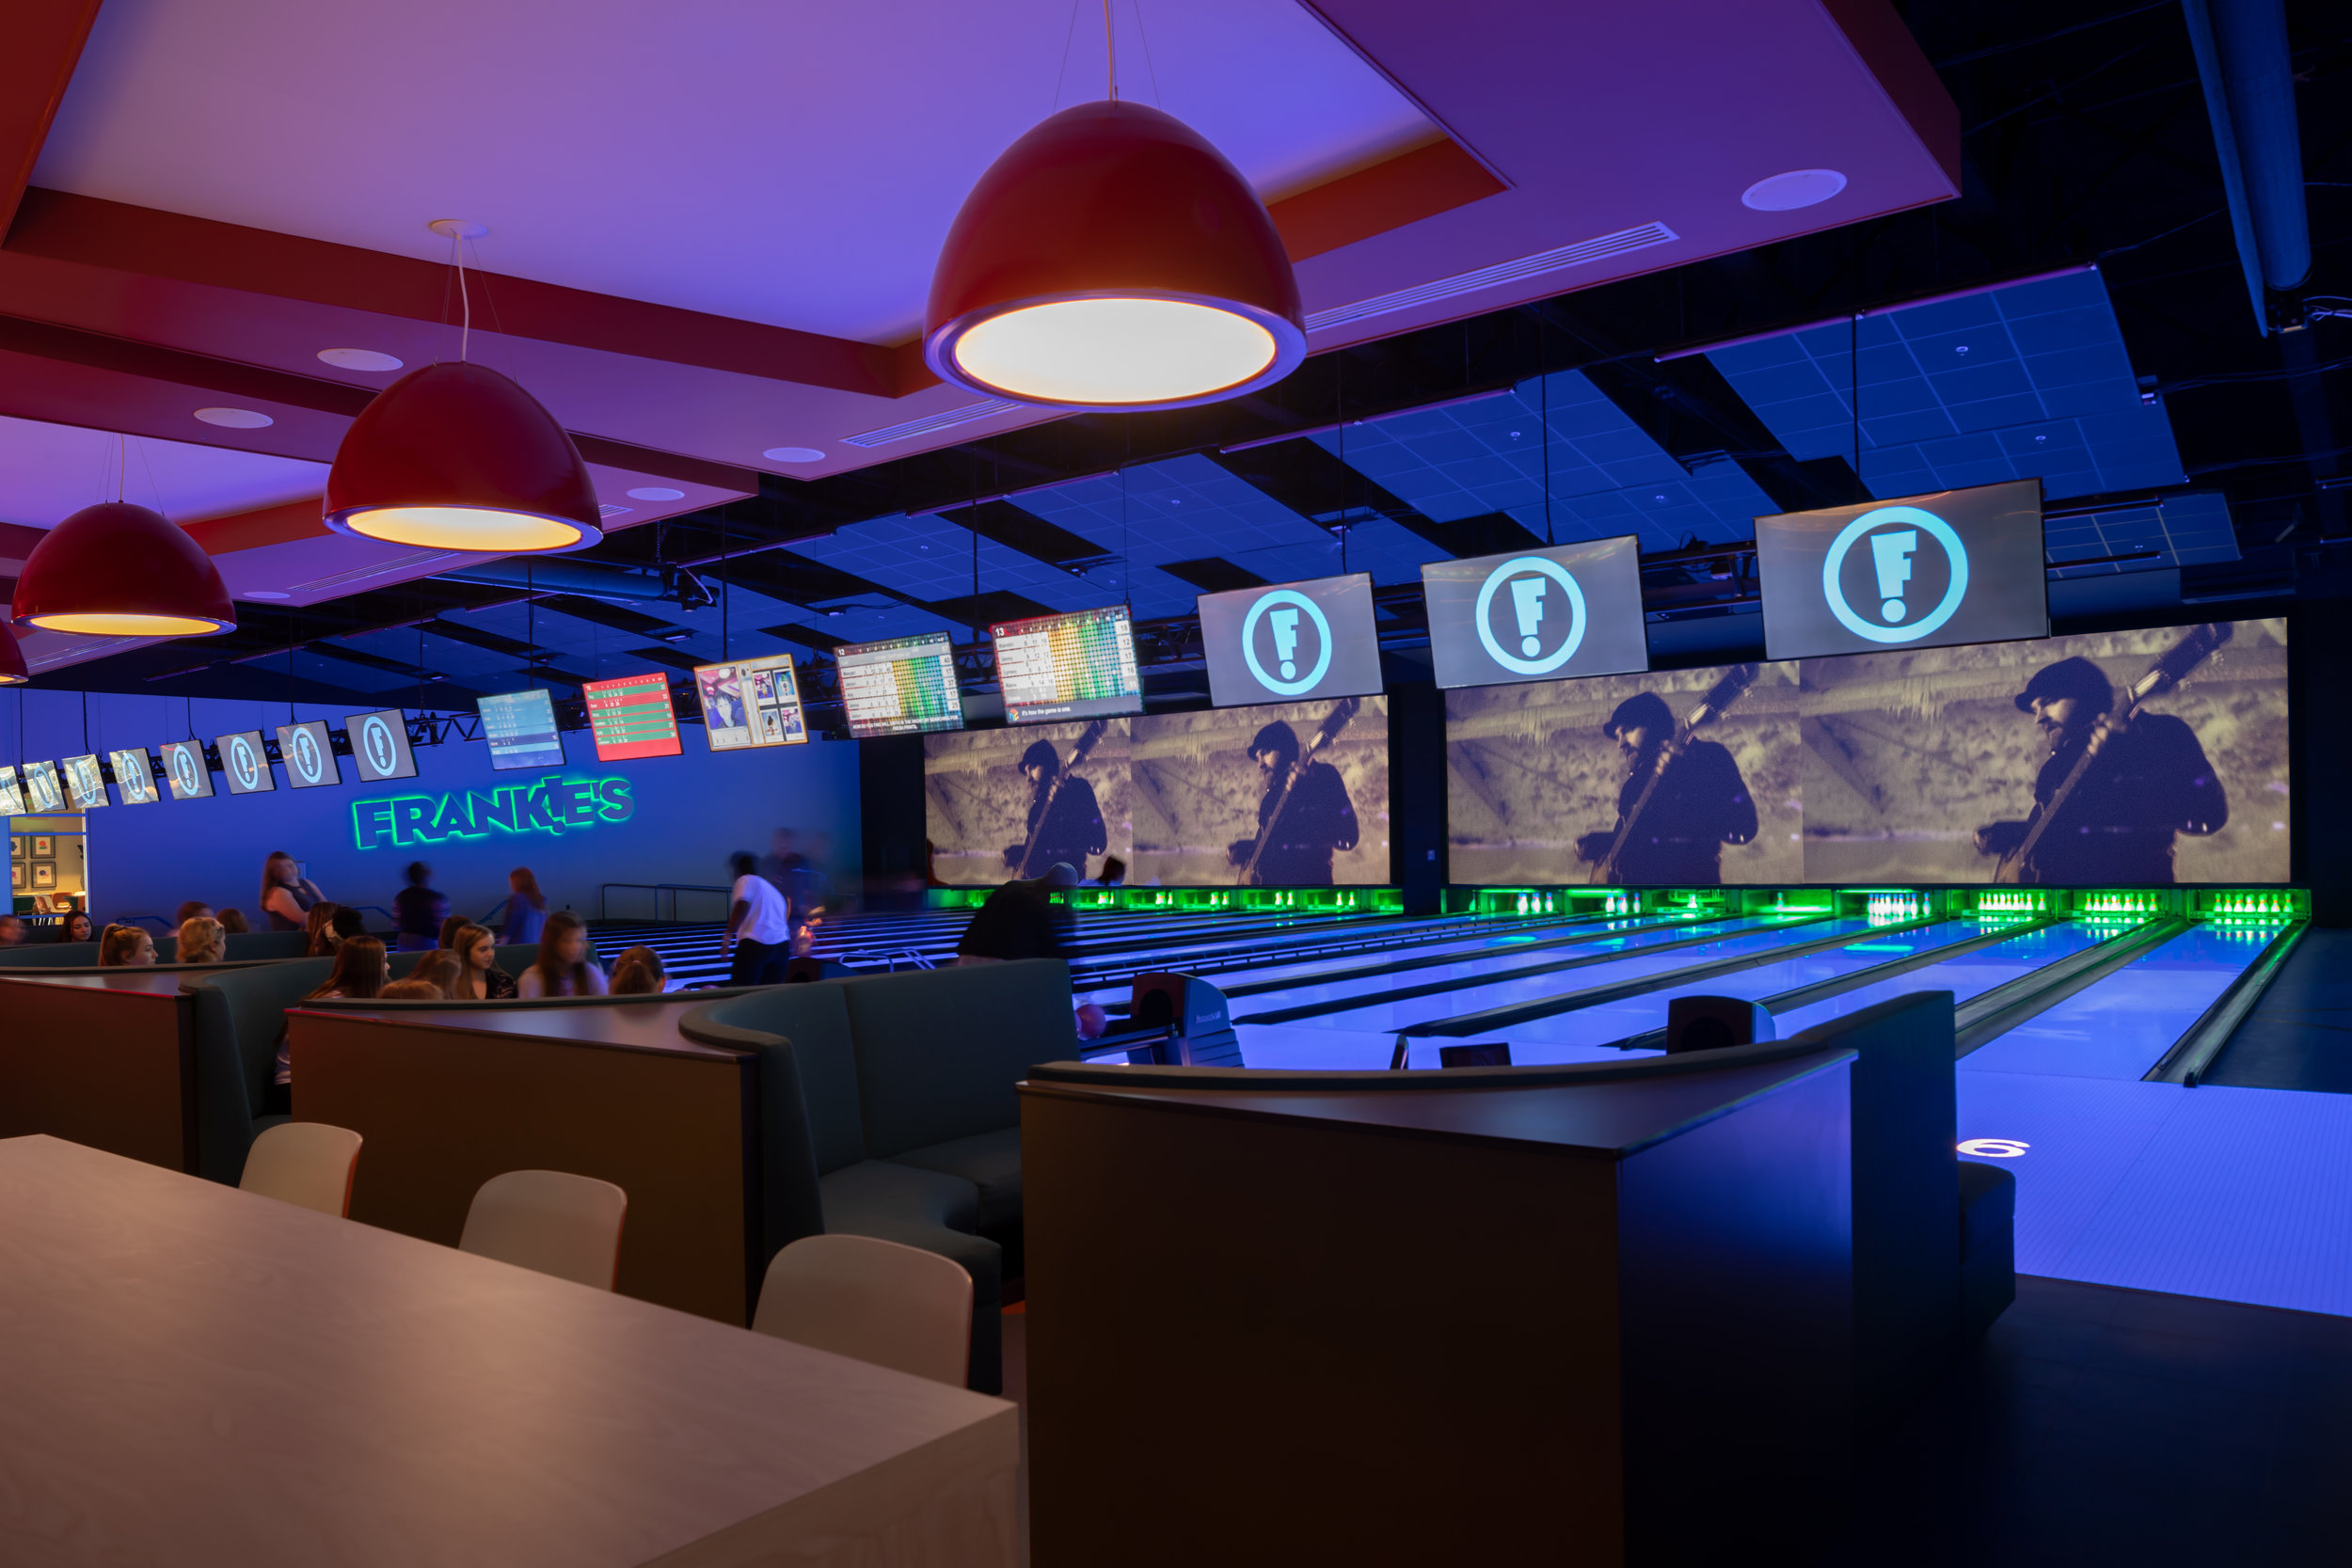 ADW-Entertainment-Frankie's-Fun-Park-Huntersville-NC-Interior-Bowling Lanes 01.jpg